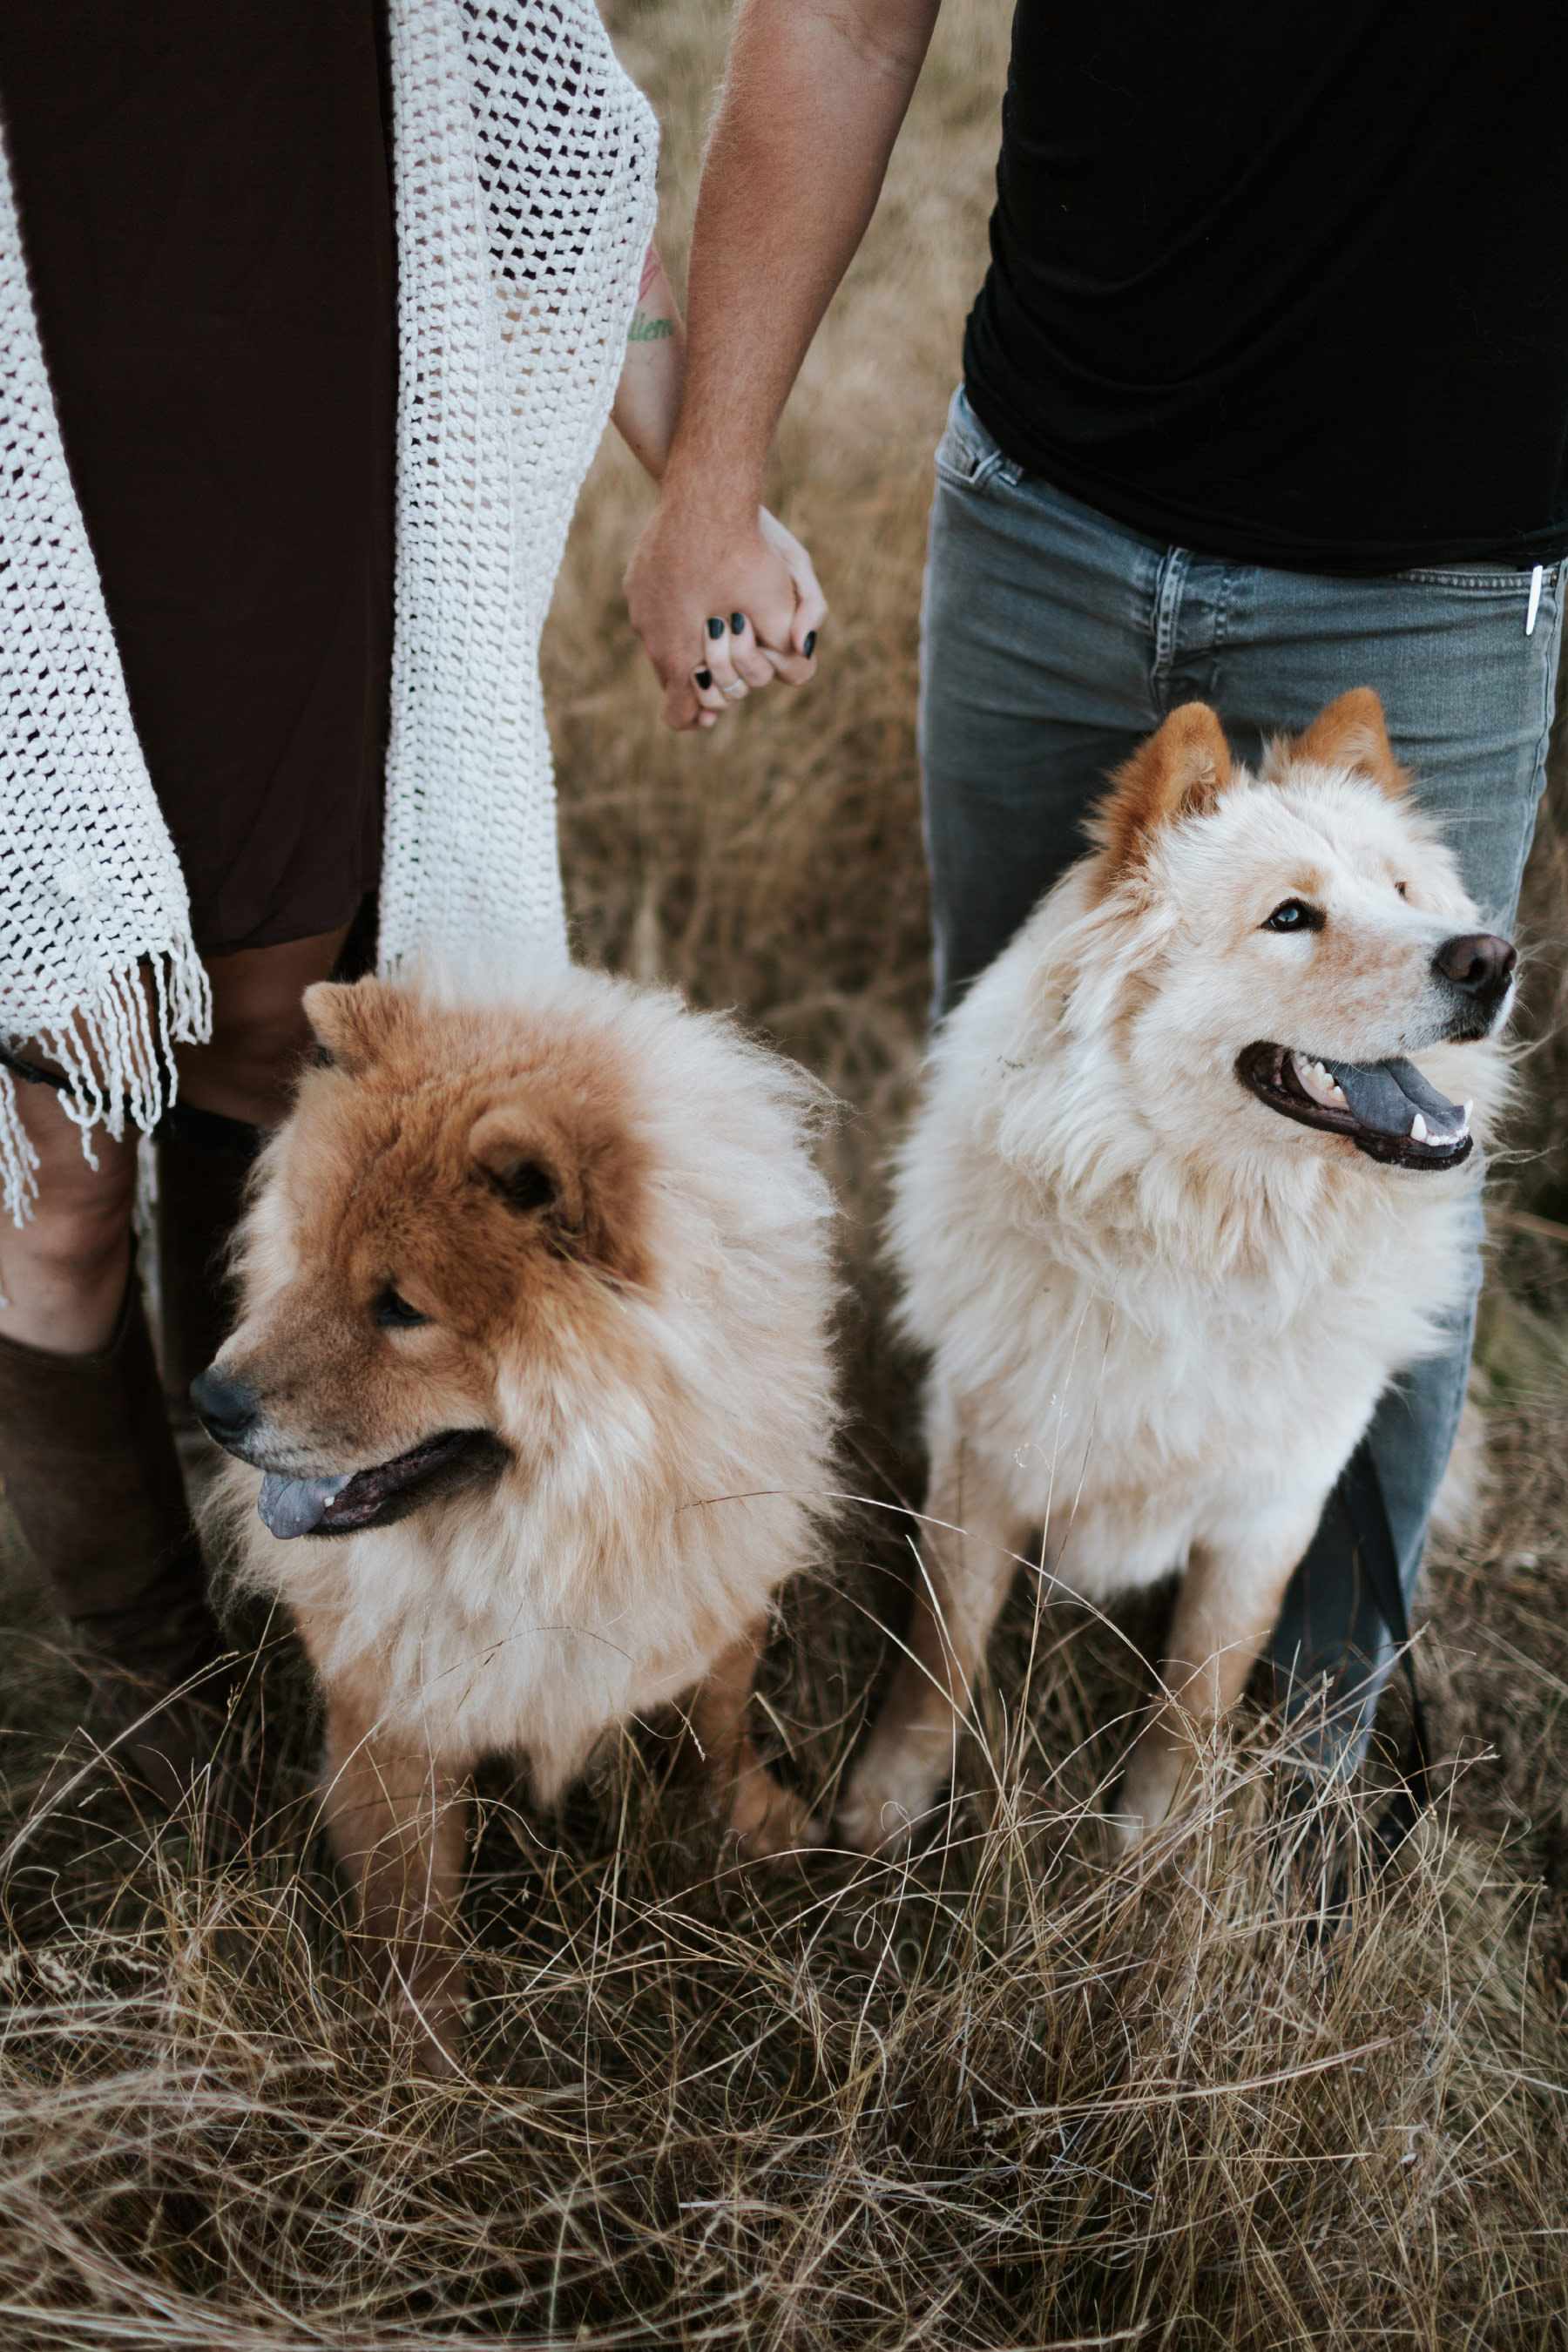 Two Chow dogs looking up at their owners holding hands